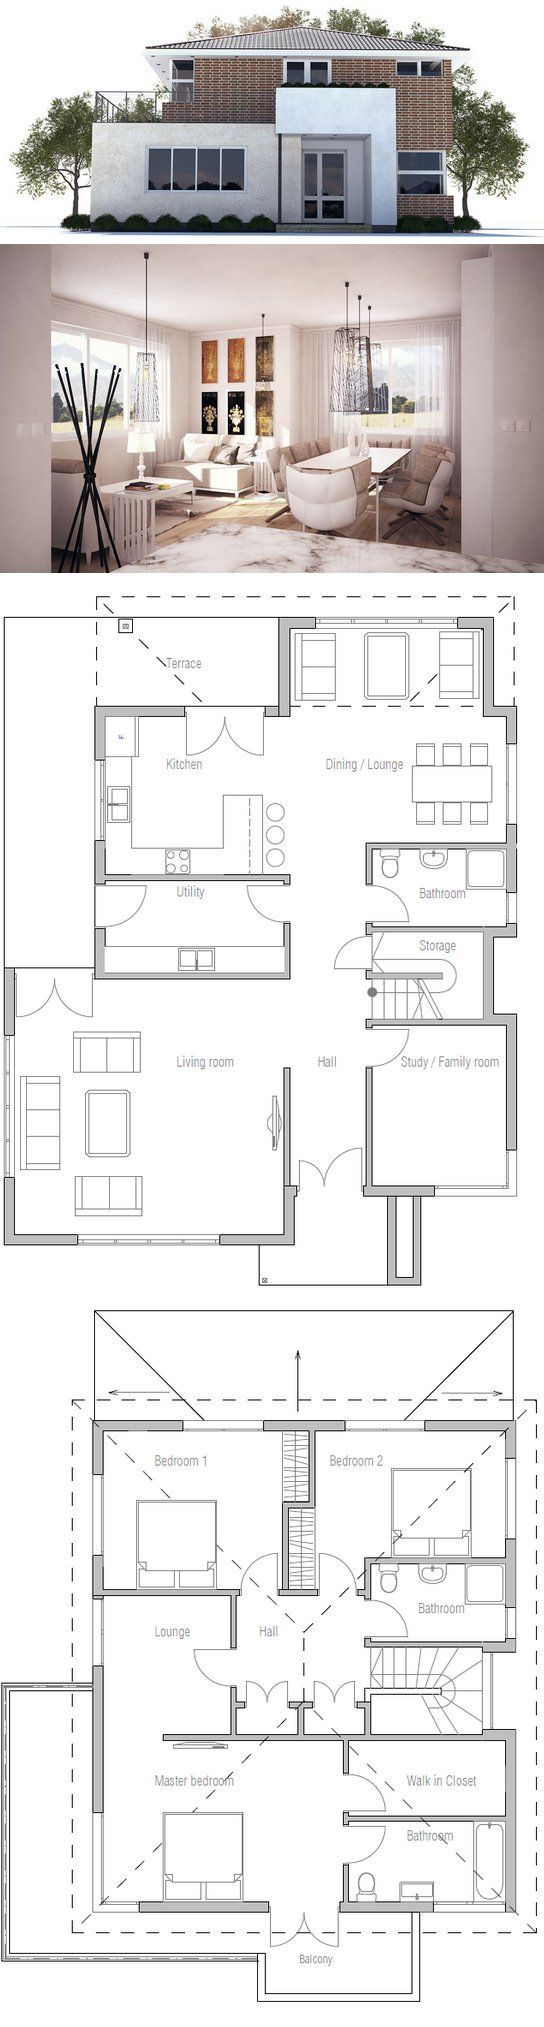 Large Living Room Layout Living Room Floor Plan Design Dining Living Room Floor Plans Large